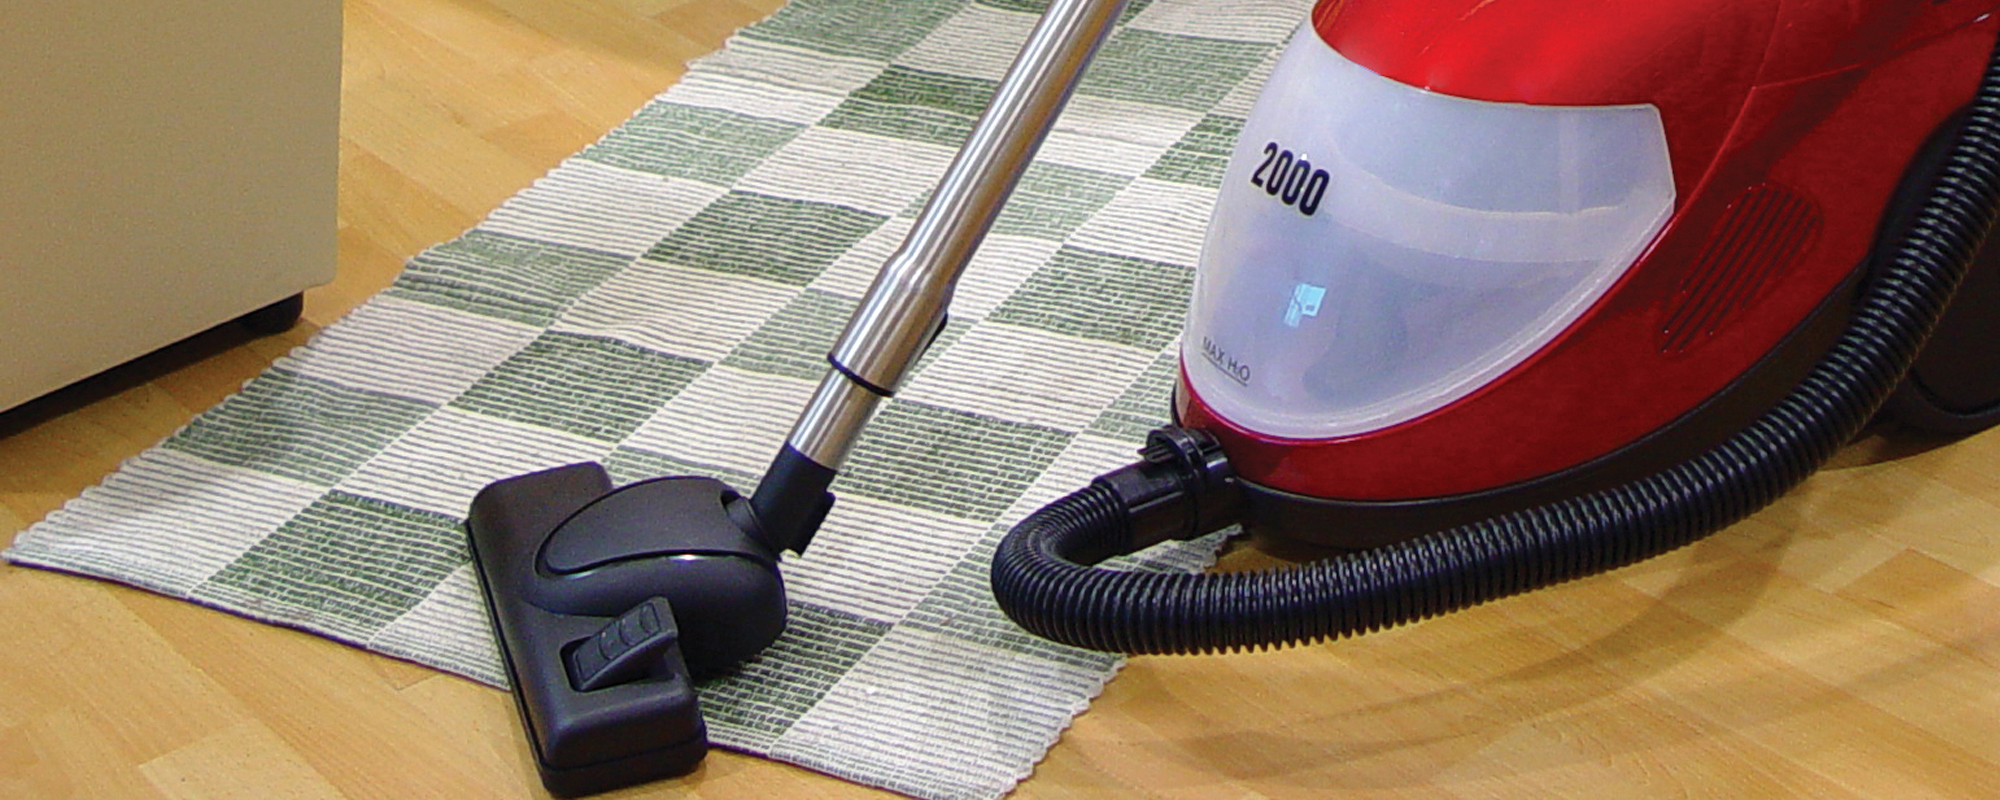 top 5 vacuuming mistakes